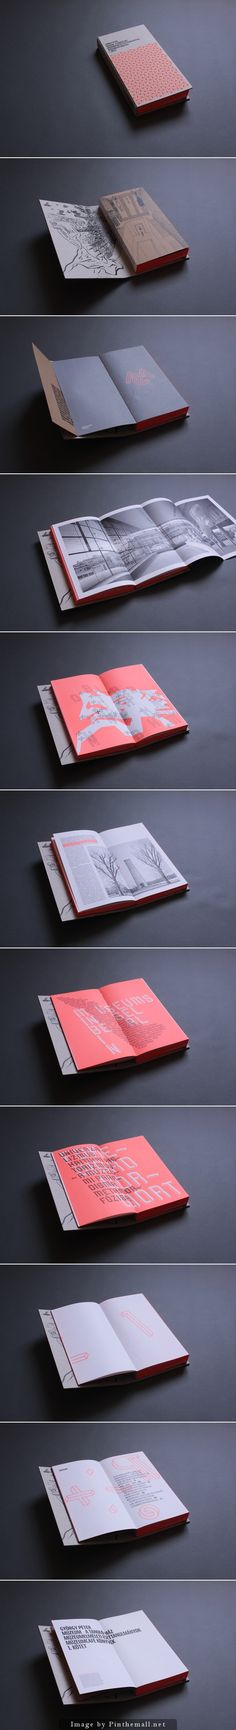 I think having these small folds in the yearbook would be fun and interactive for readers!